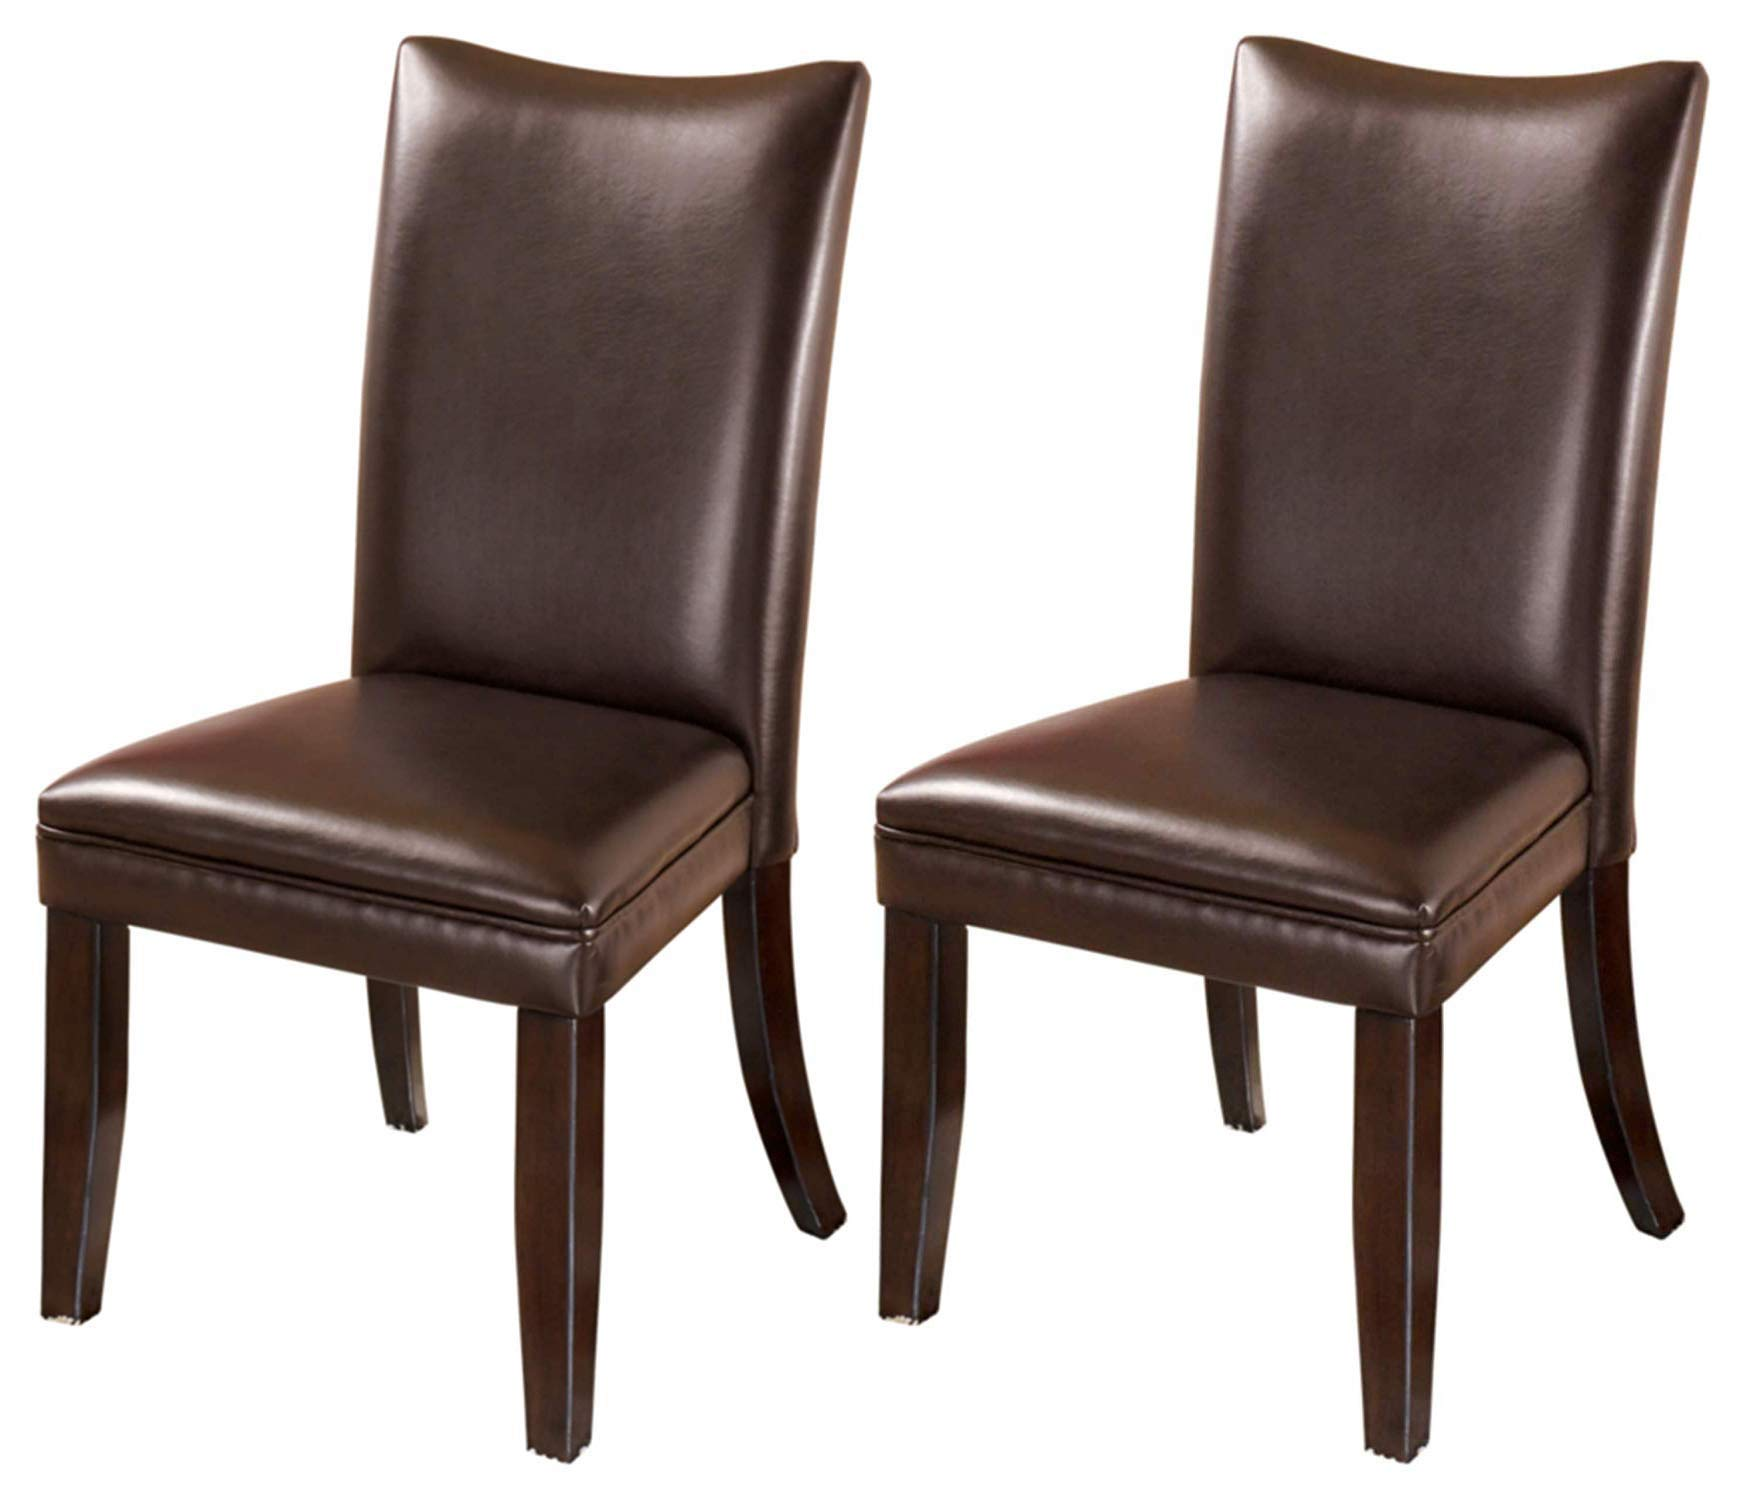 Ashley Furniture Signature Design - Charrell Dining Upolstered Side Chair - Set of 2 - Medium Brown